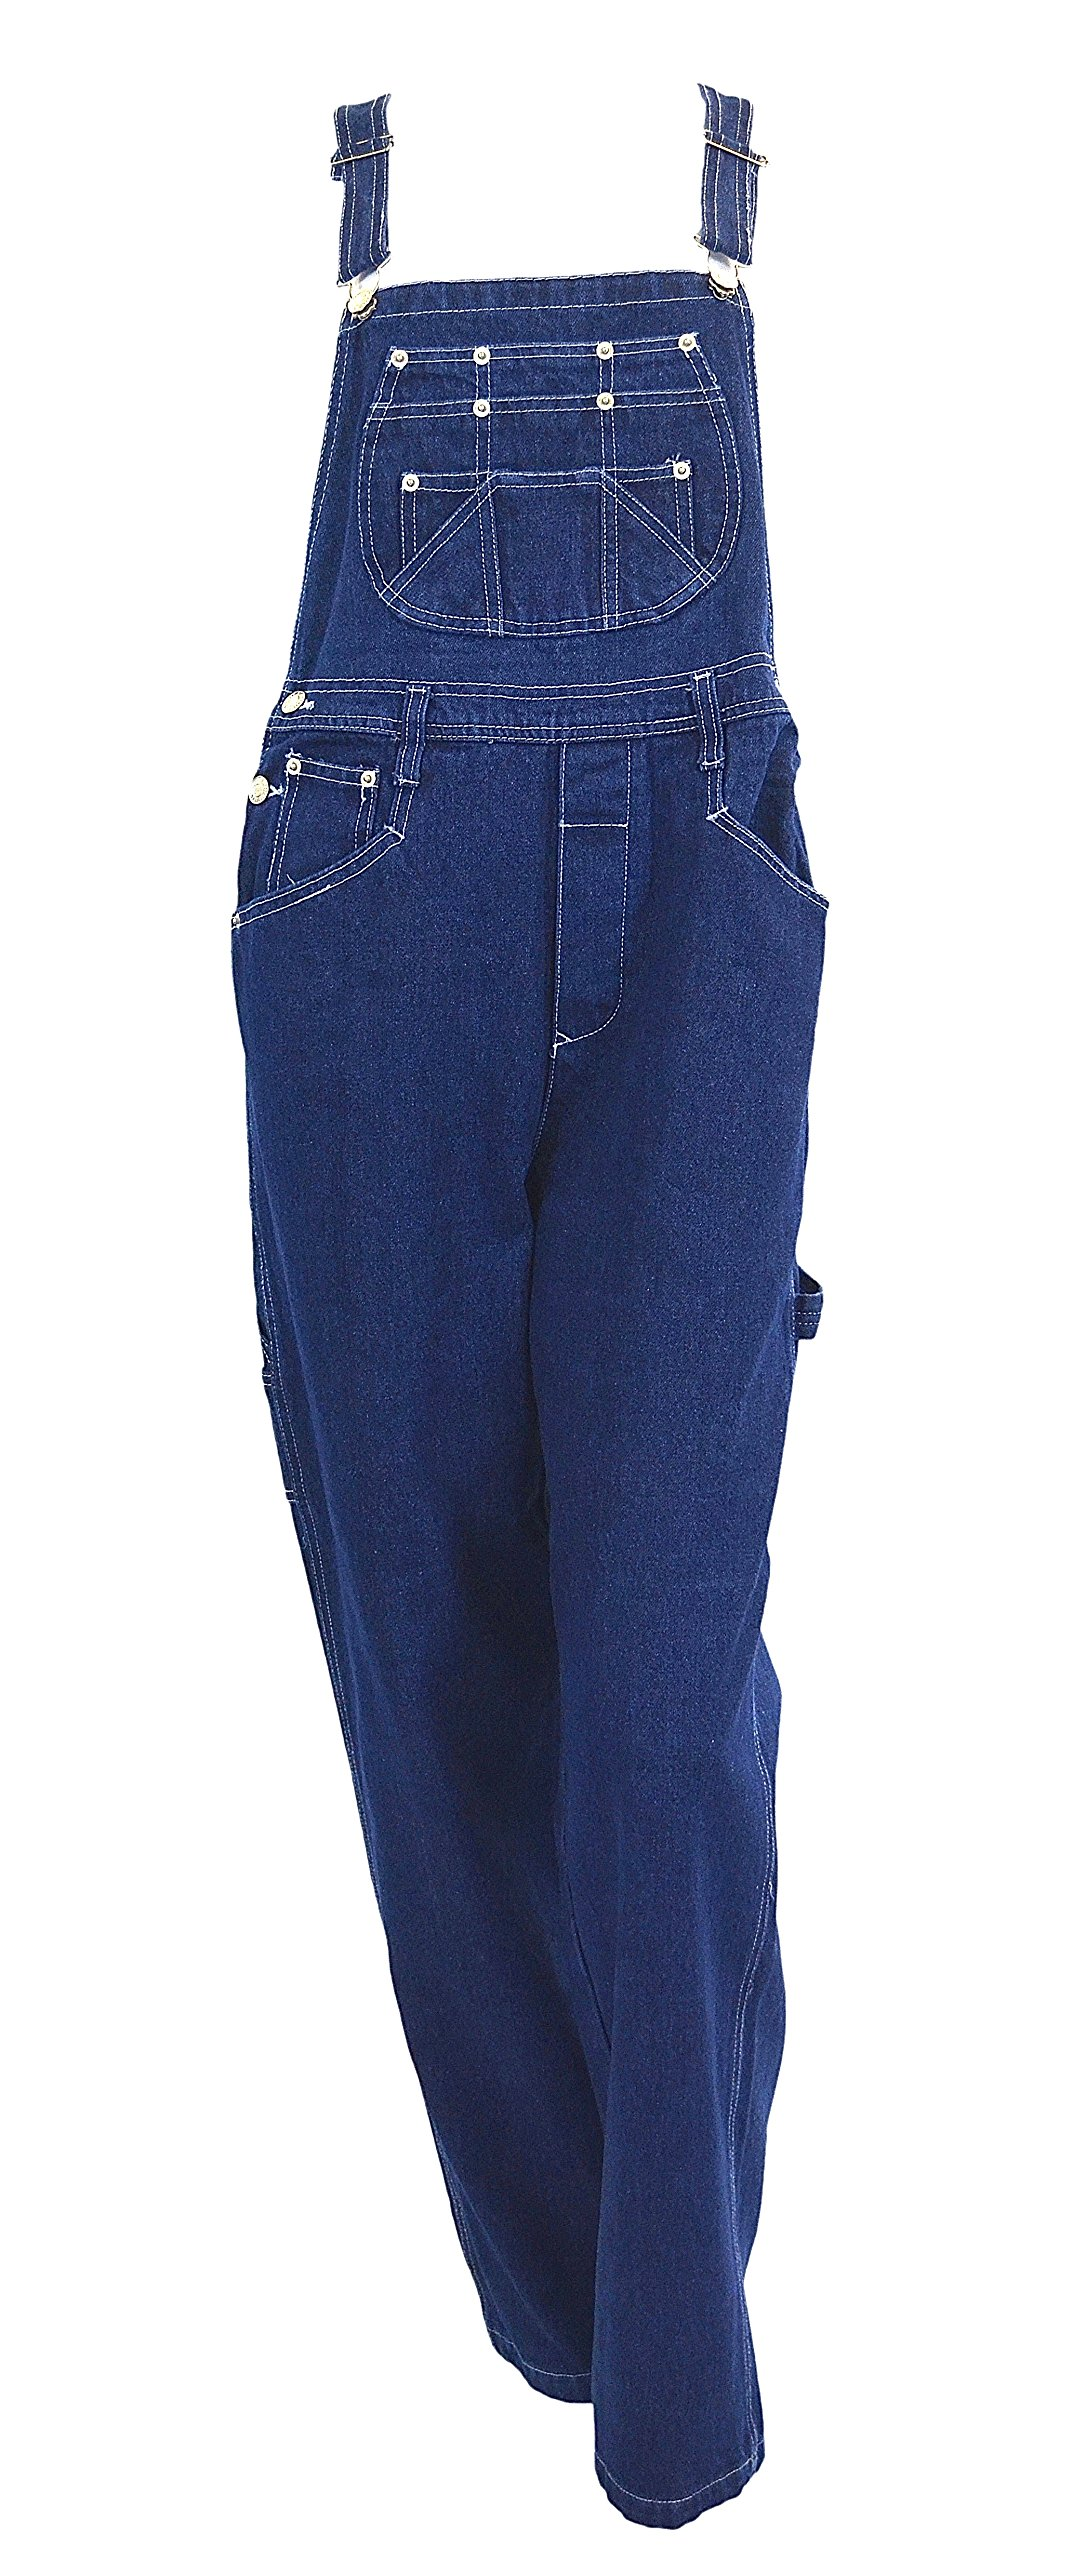 Eagle Women's EGLE jeans Stonewashed Blue denim bib overalls Size XX-Large